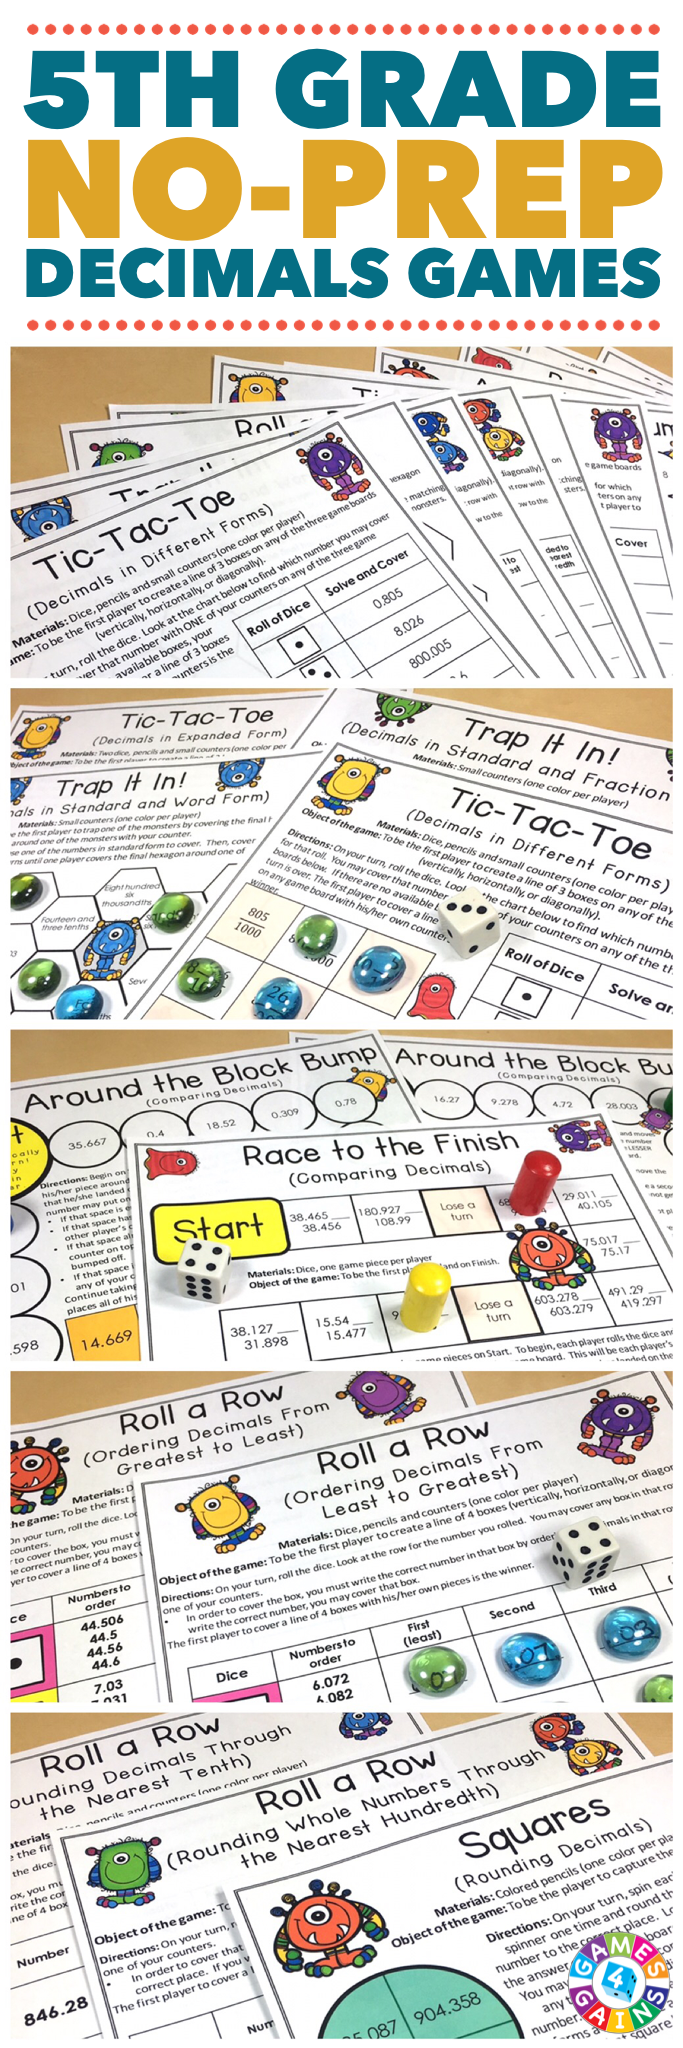 image about Printable Decimal Games titled 5th Quality Math Facilities: 5th Quality Decimals Video games 5.NBT.3, 5